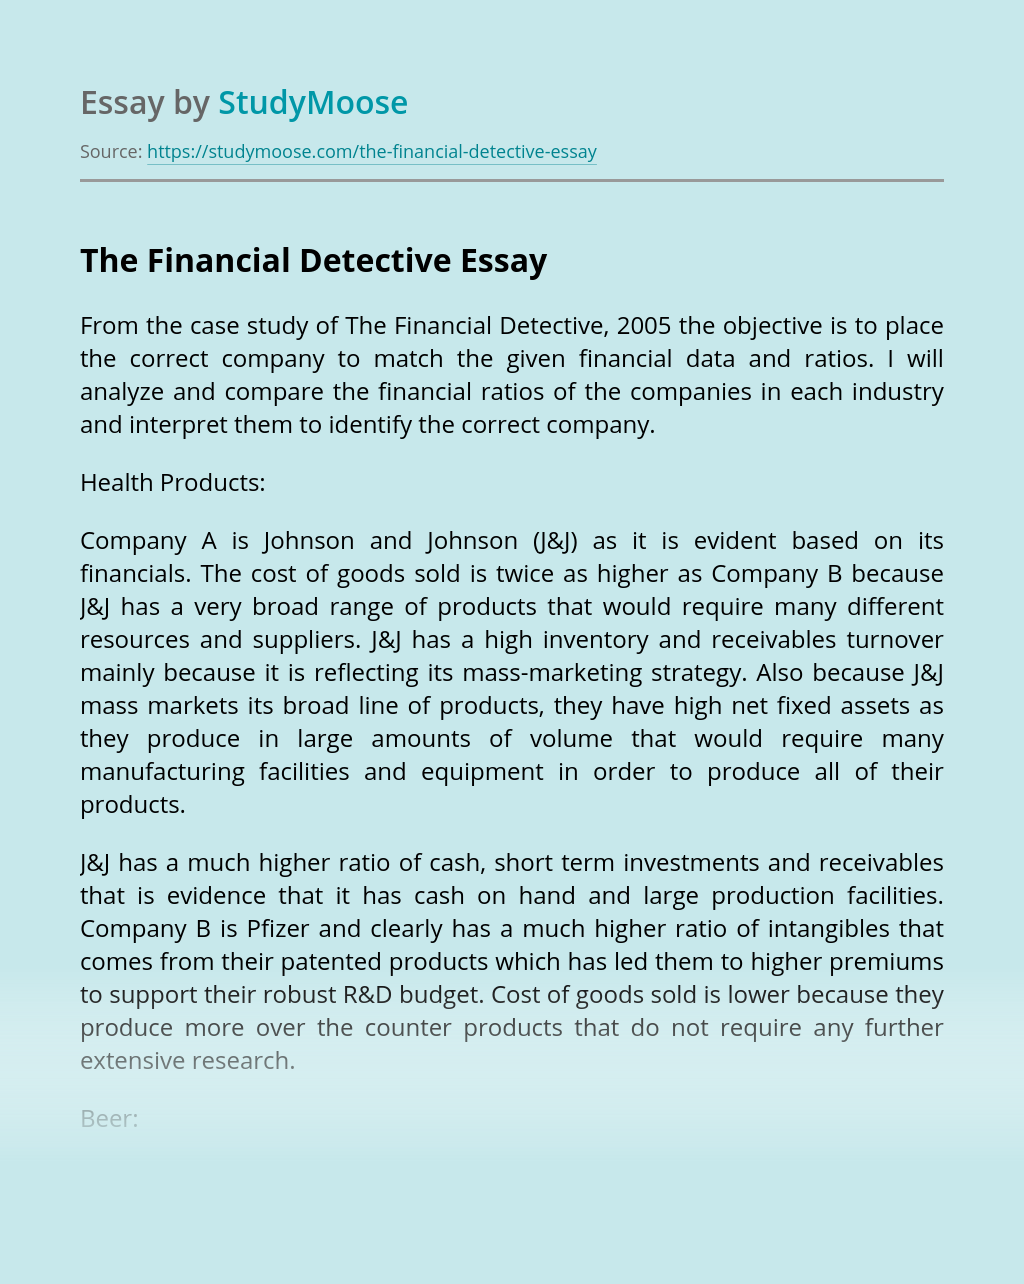 The Financial Detective